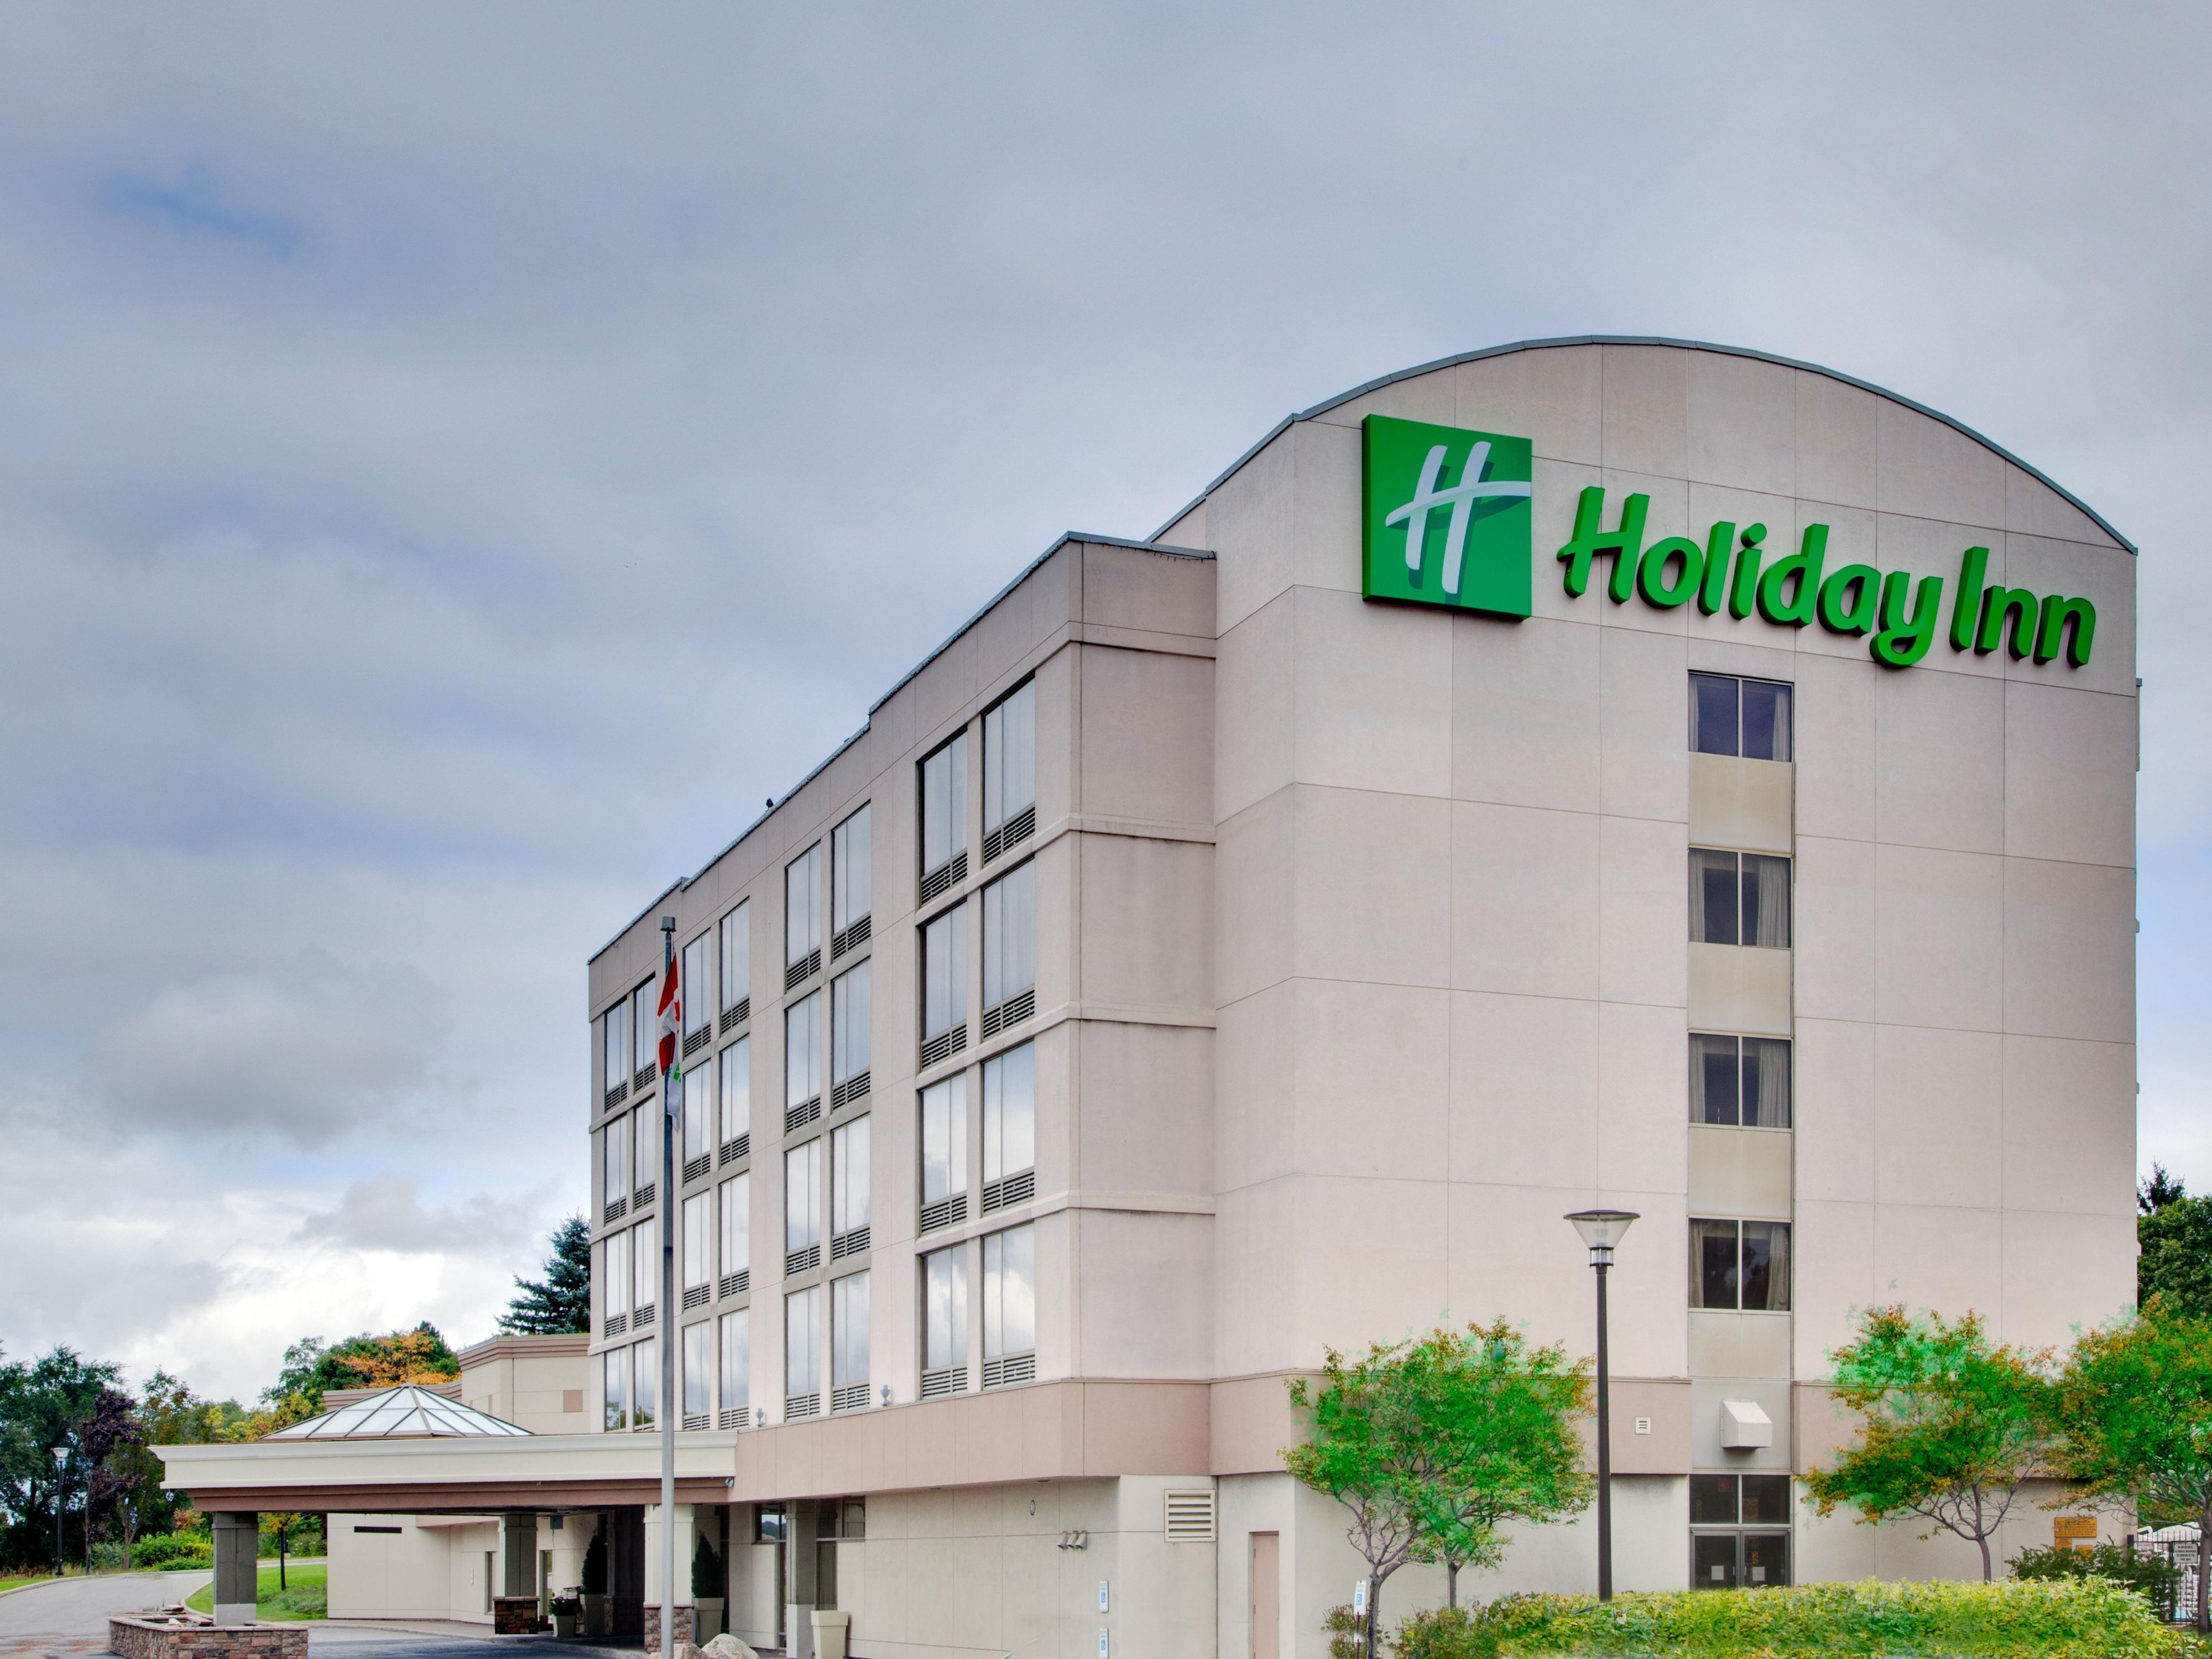 Welcome to the Holiday Inn Barrie Hotel & Conference Ctr.!